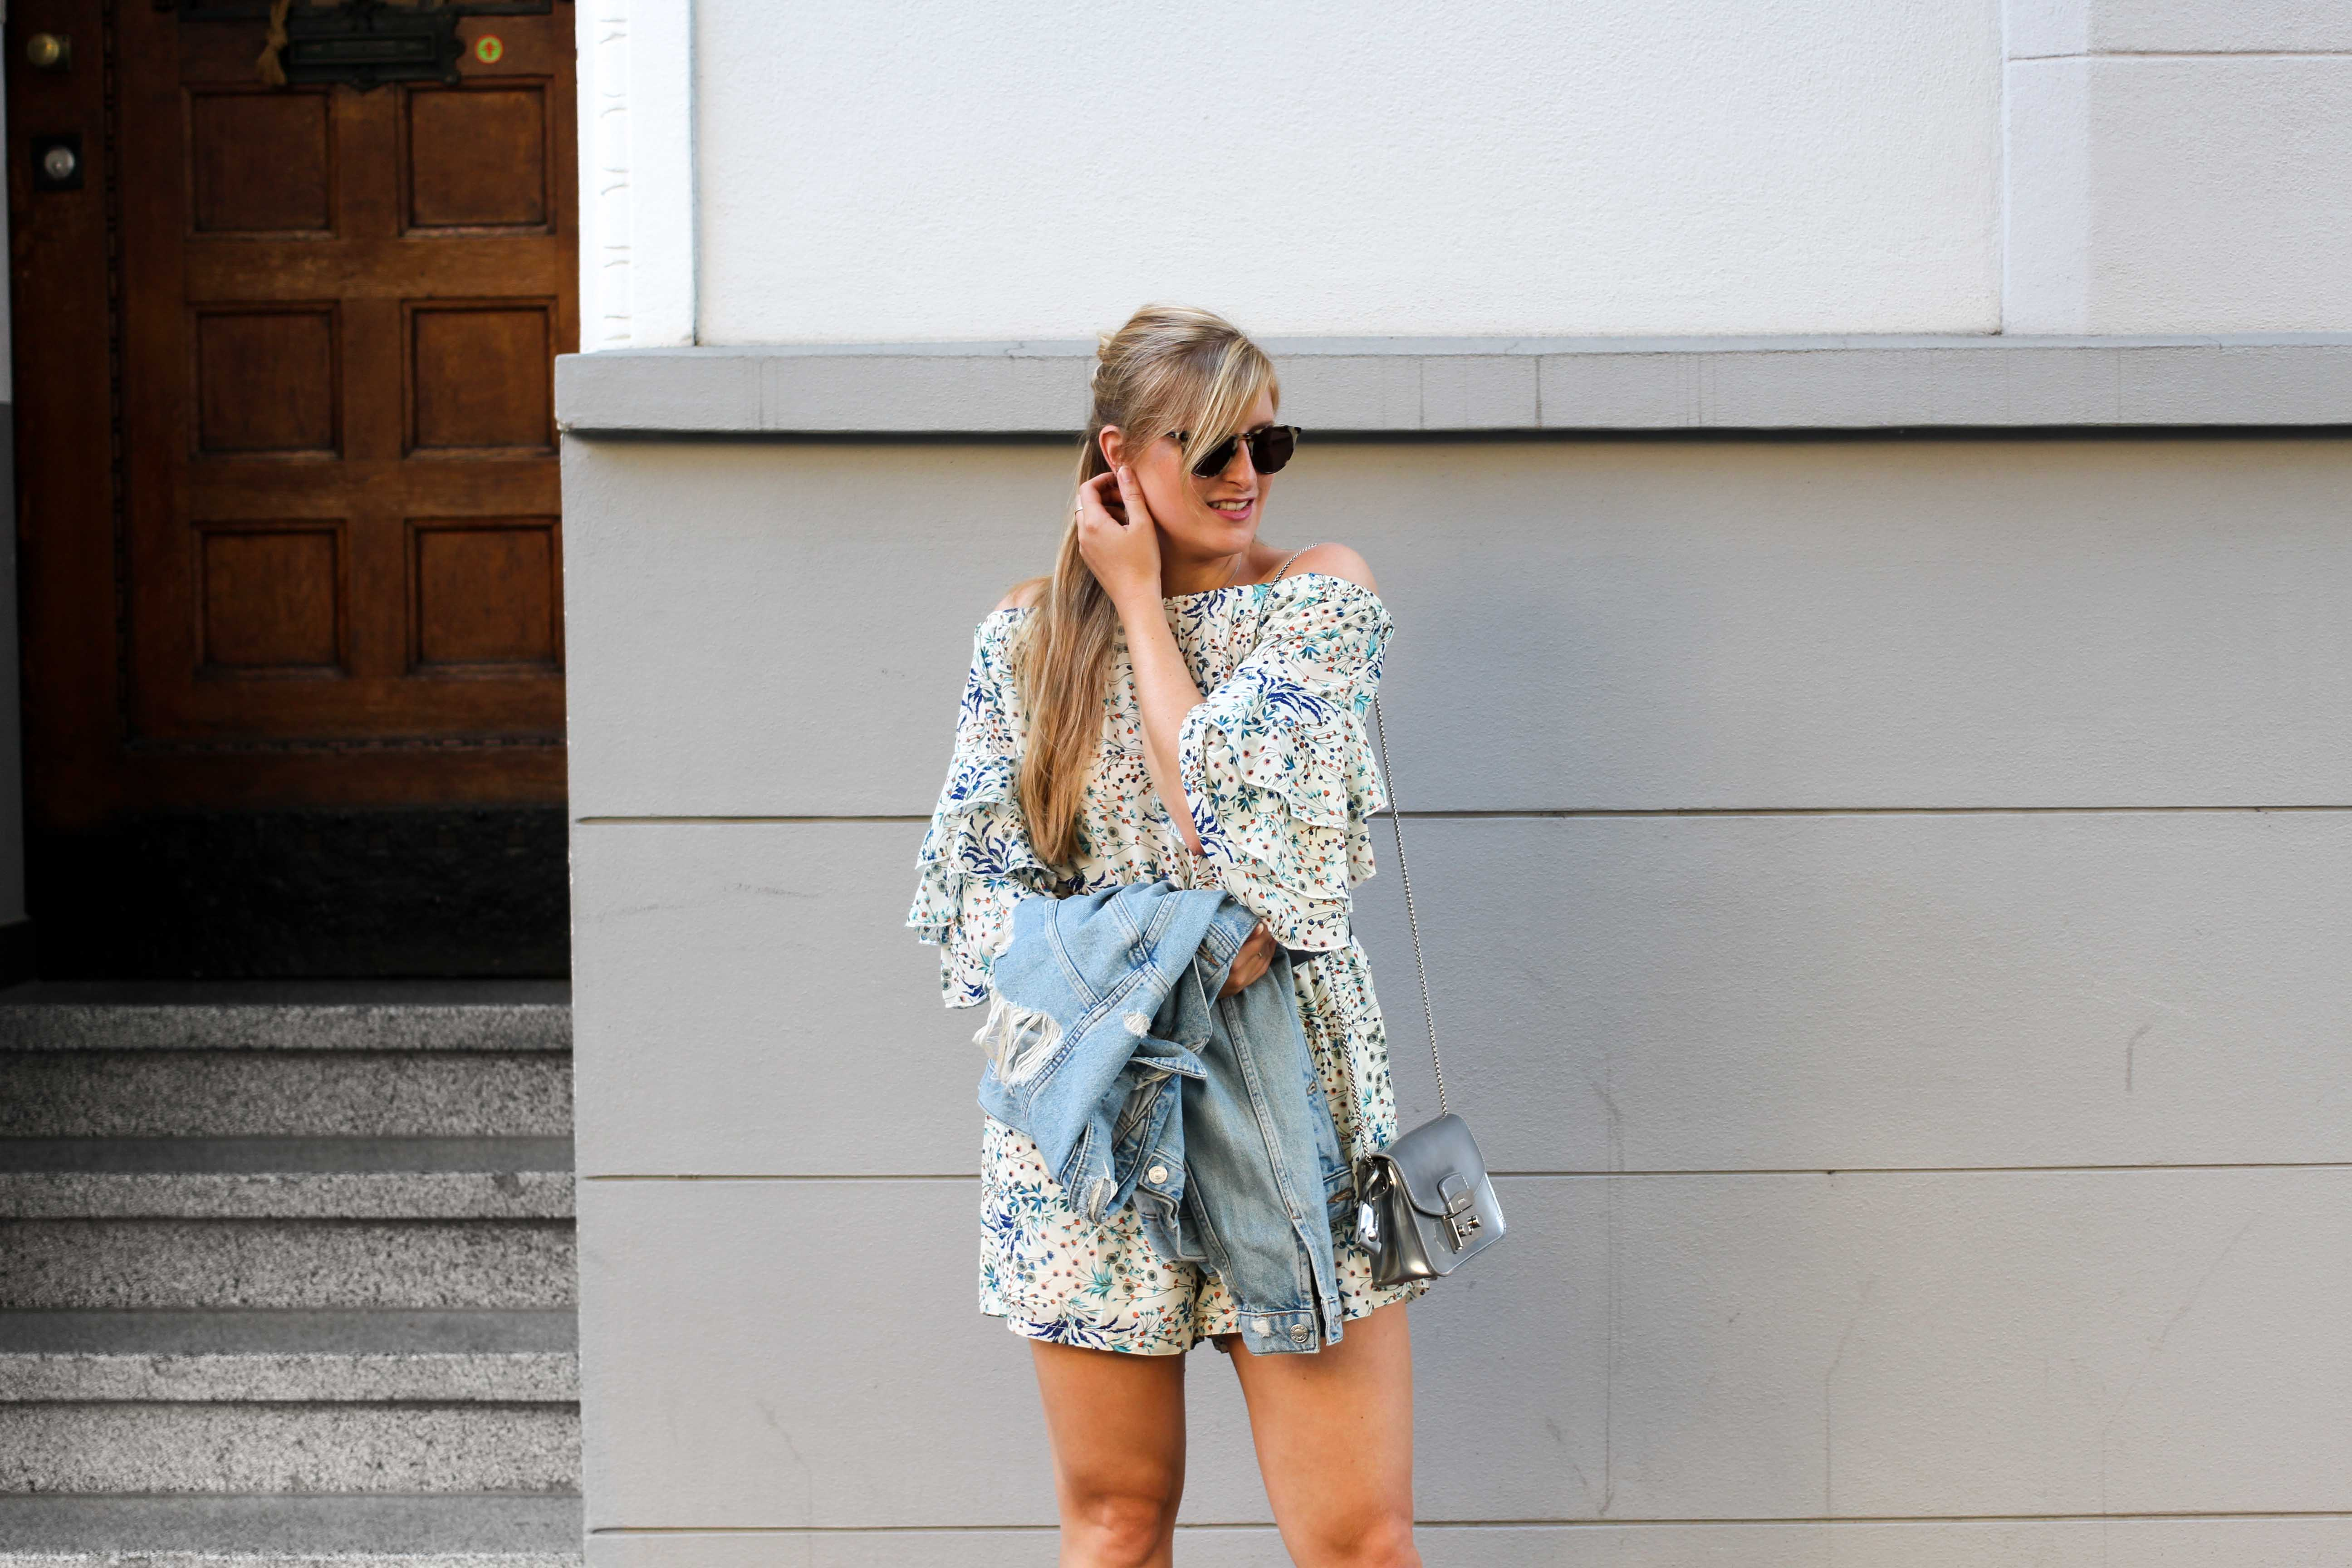 Blumenprint Jumpsuit Offshoulder IRL Collection Vipsters Ripped Jeansjacke Zalando kombinieren Outfit Herbst Modeblog 5